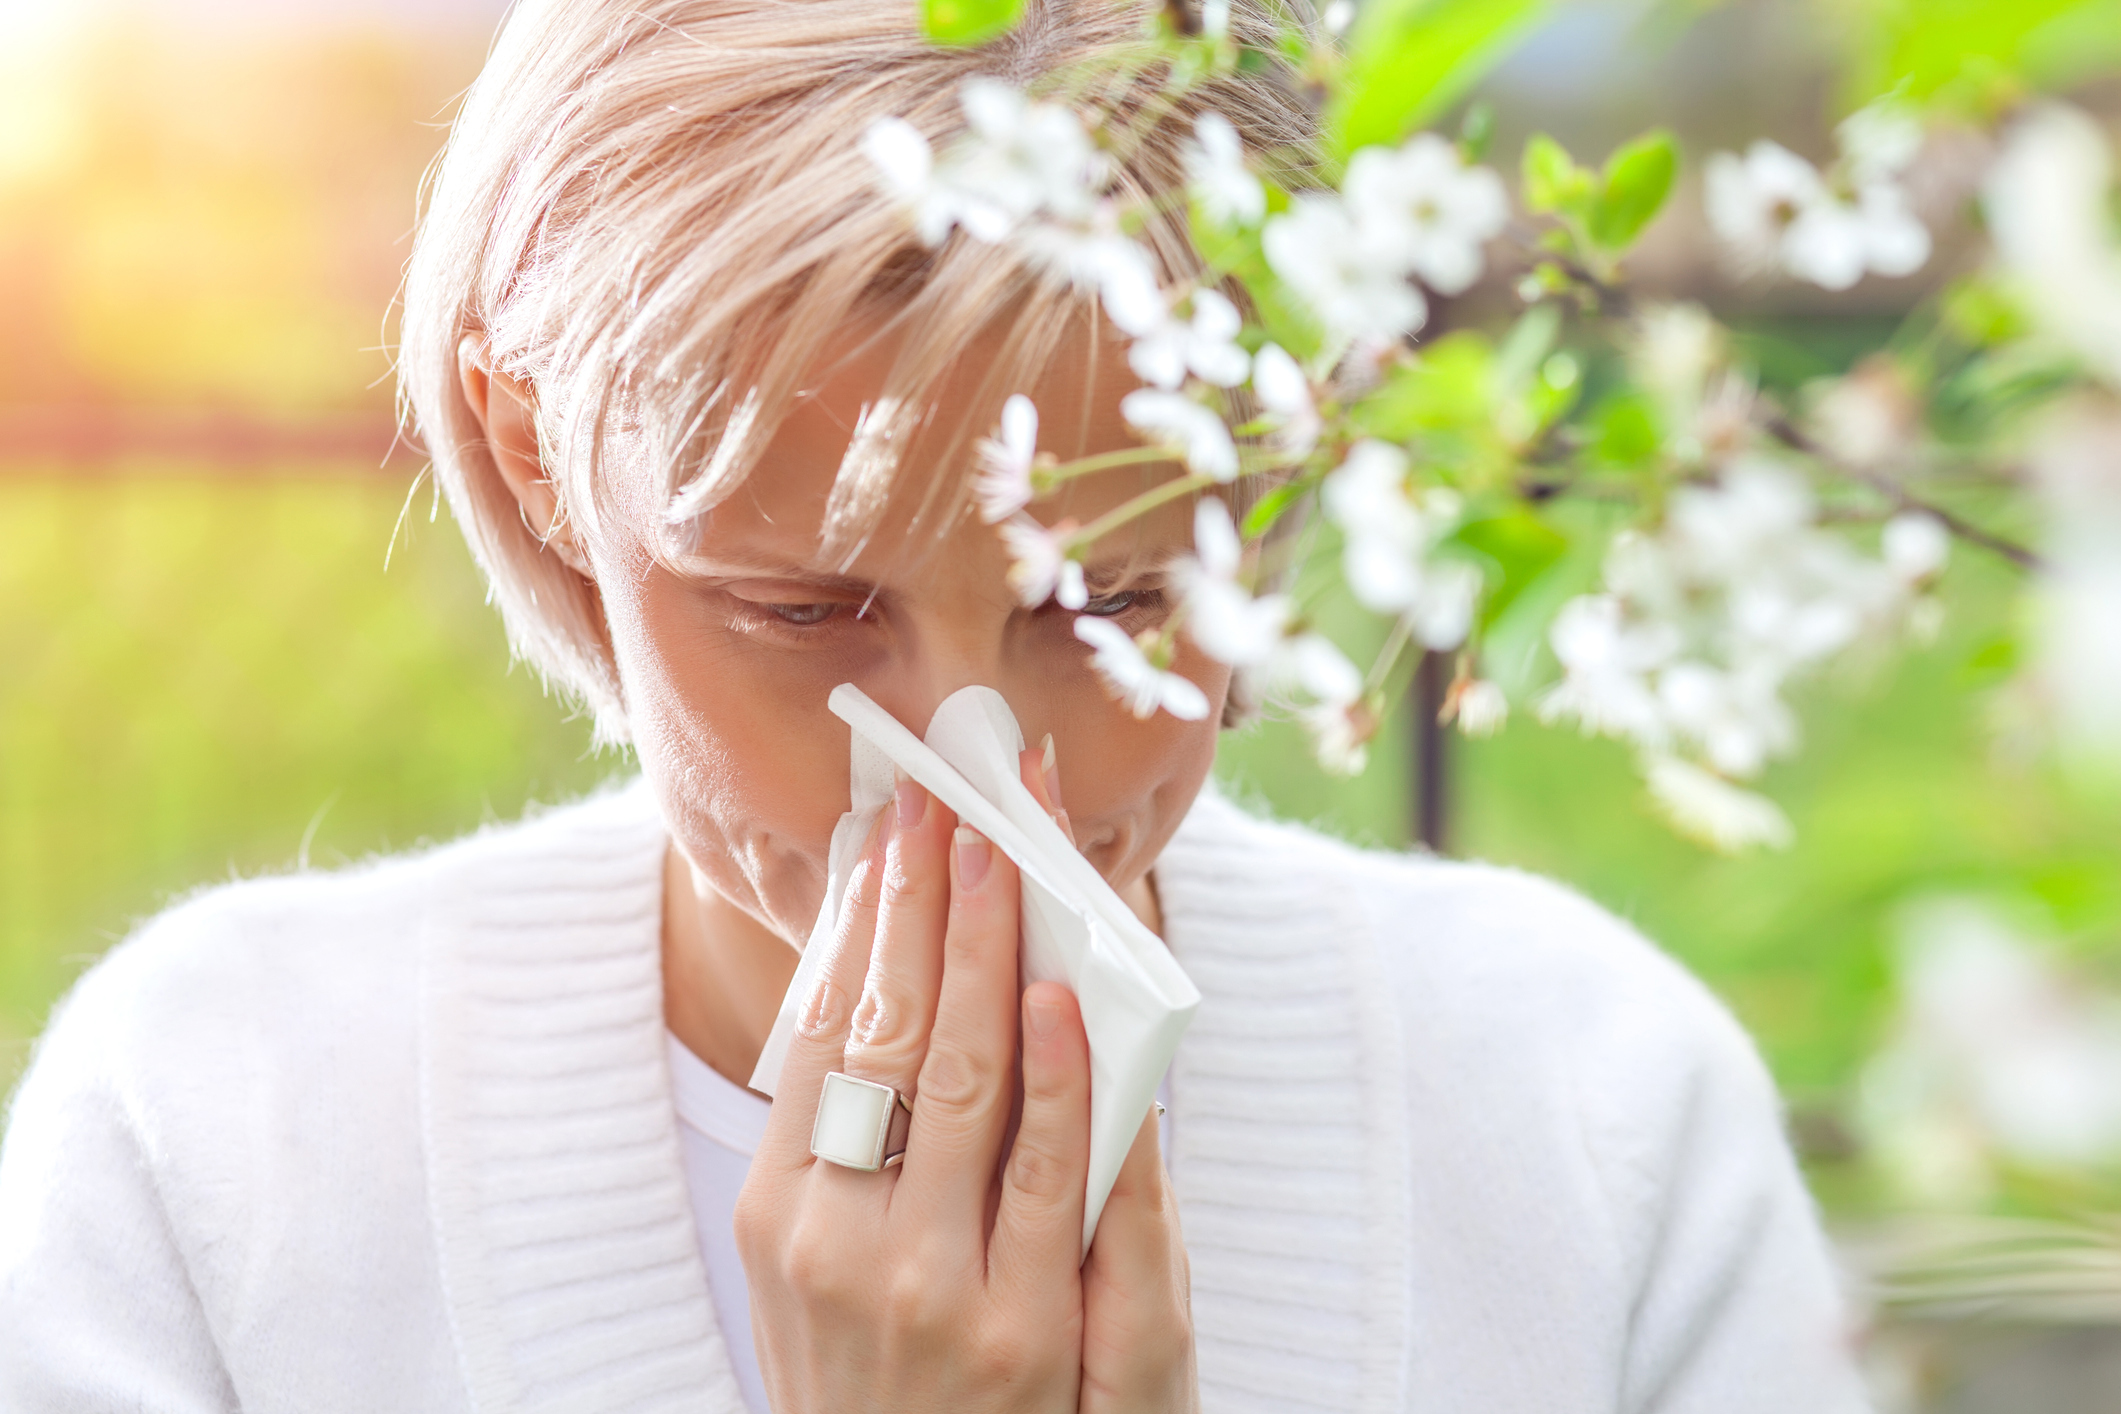 Woman sneezing, standing next to a tree in bloom. (Getty Images)